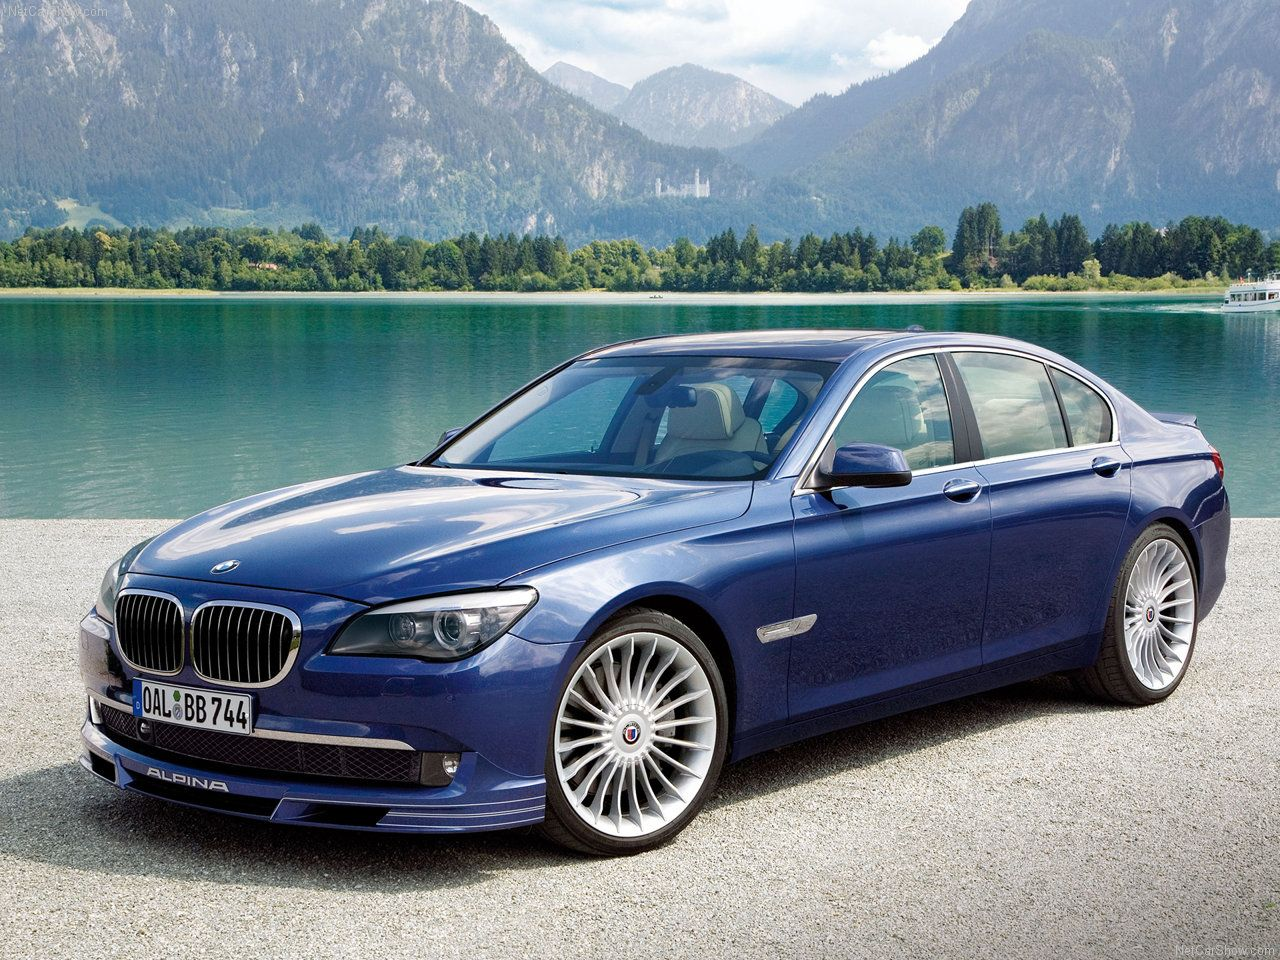 Alpina b7 car wallpaper http hdcarwallfx com alpina b7